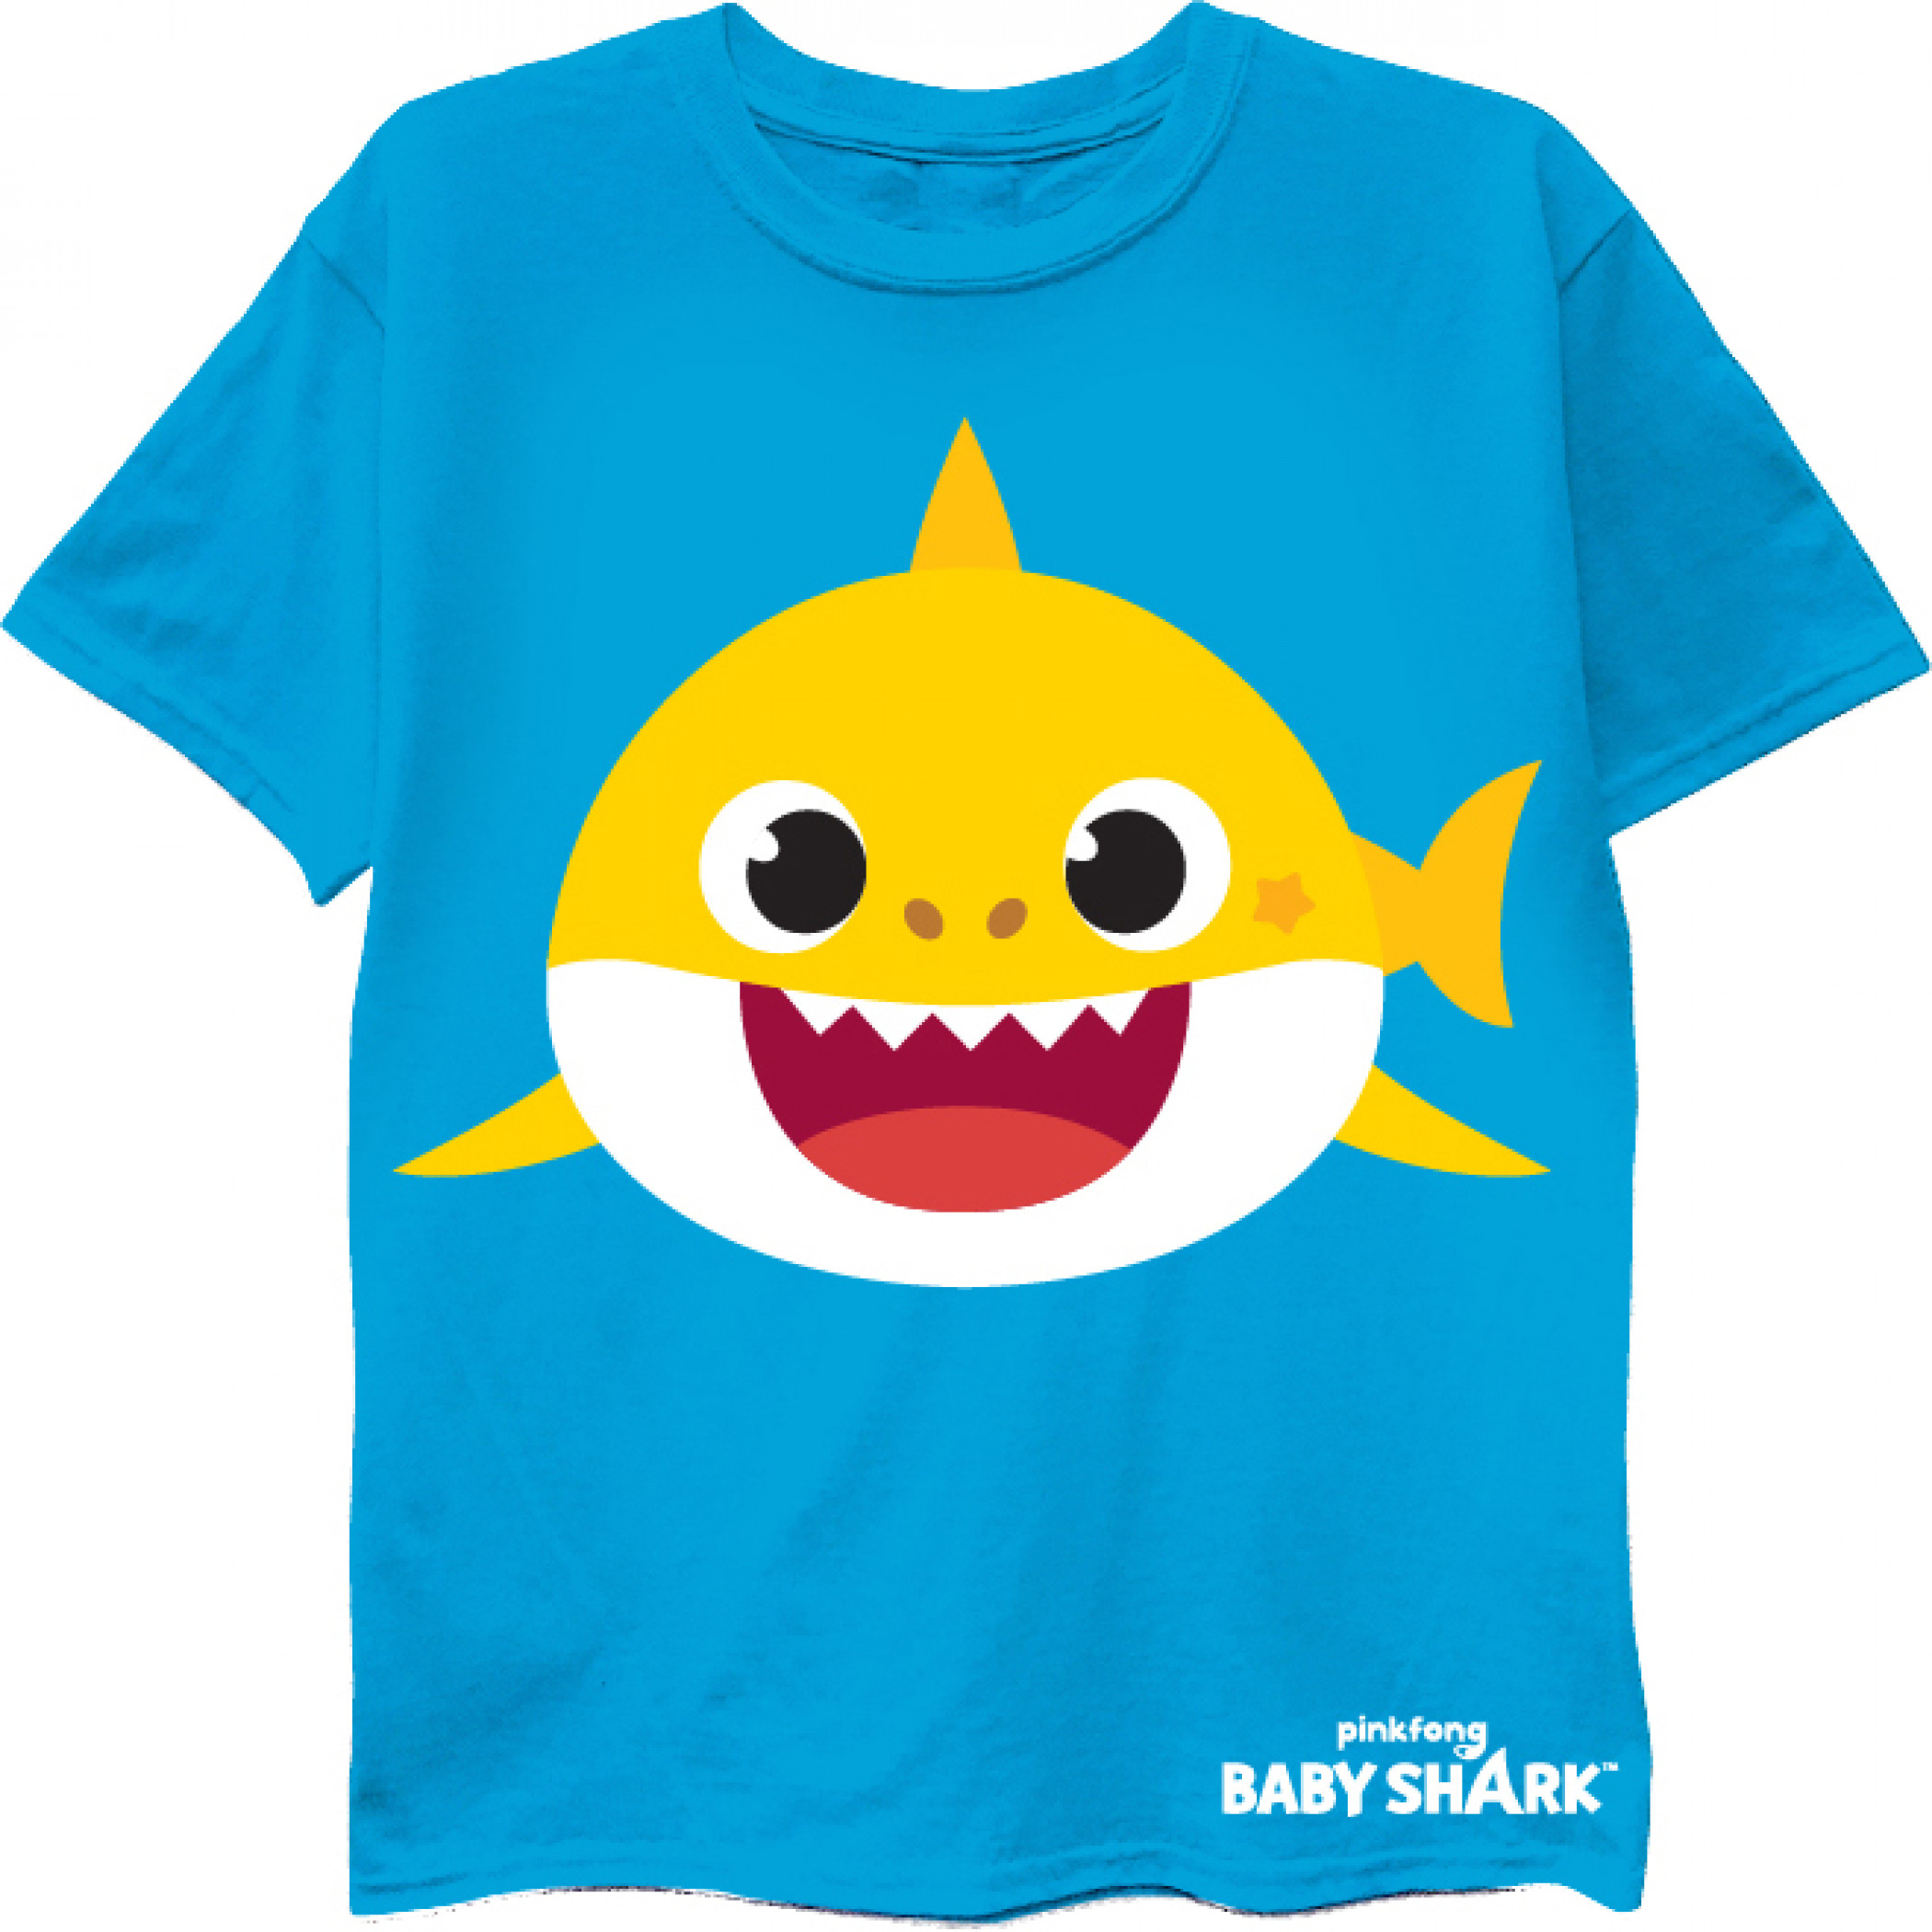 Baby Shark Toddler and Infant Shirt.